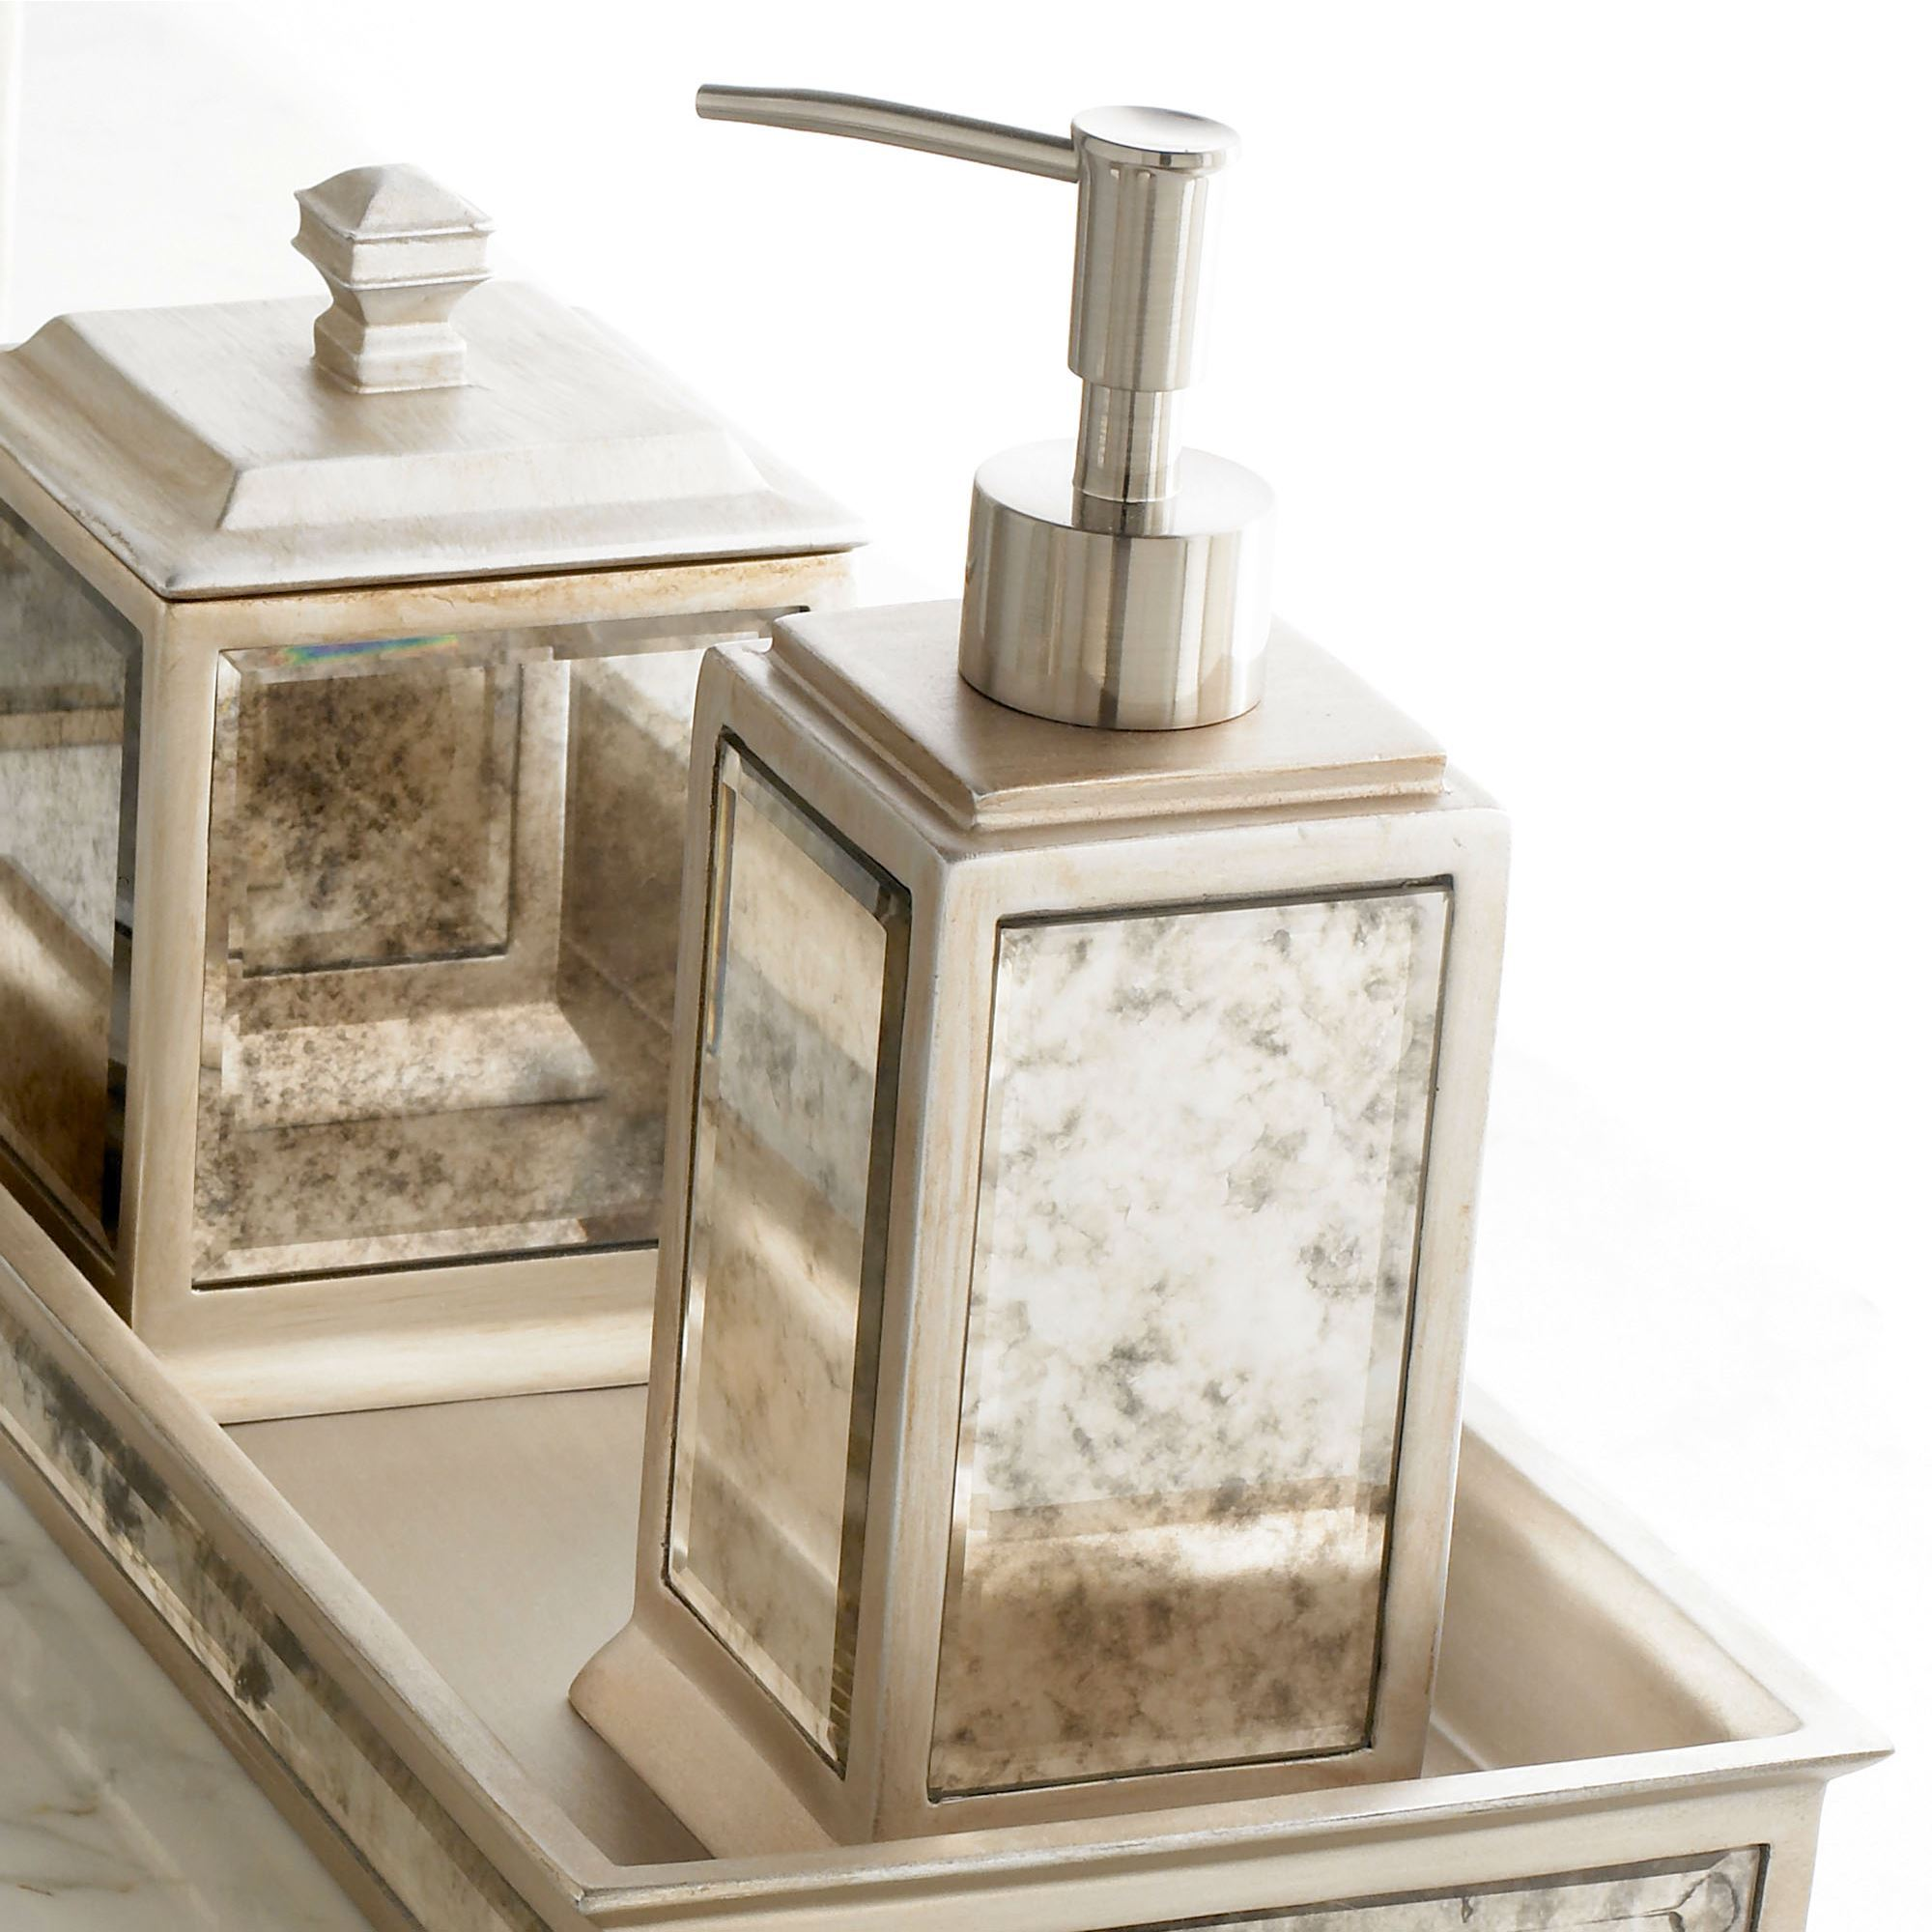 Bathroom Accessories Palazzo Antique Mirrored Bath Accessories